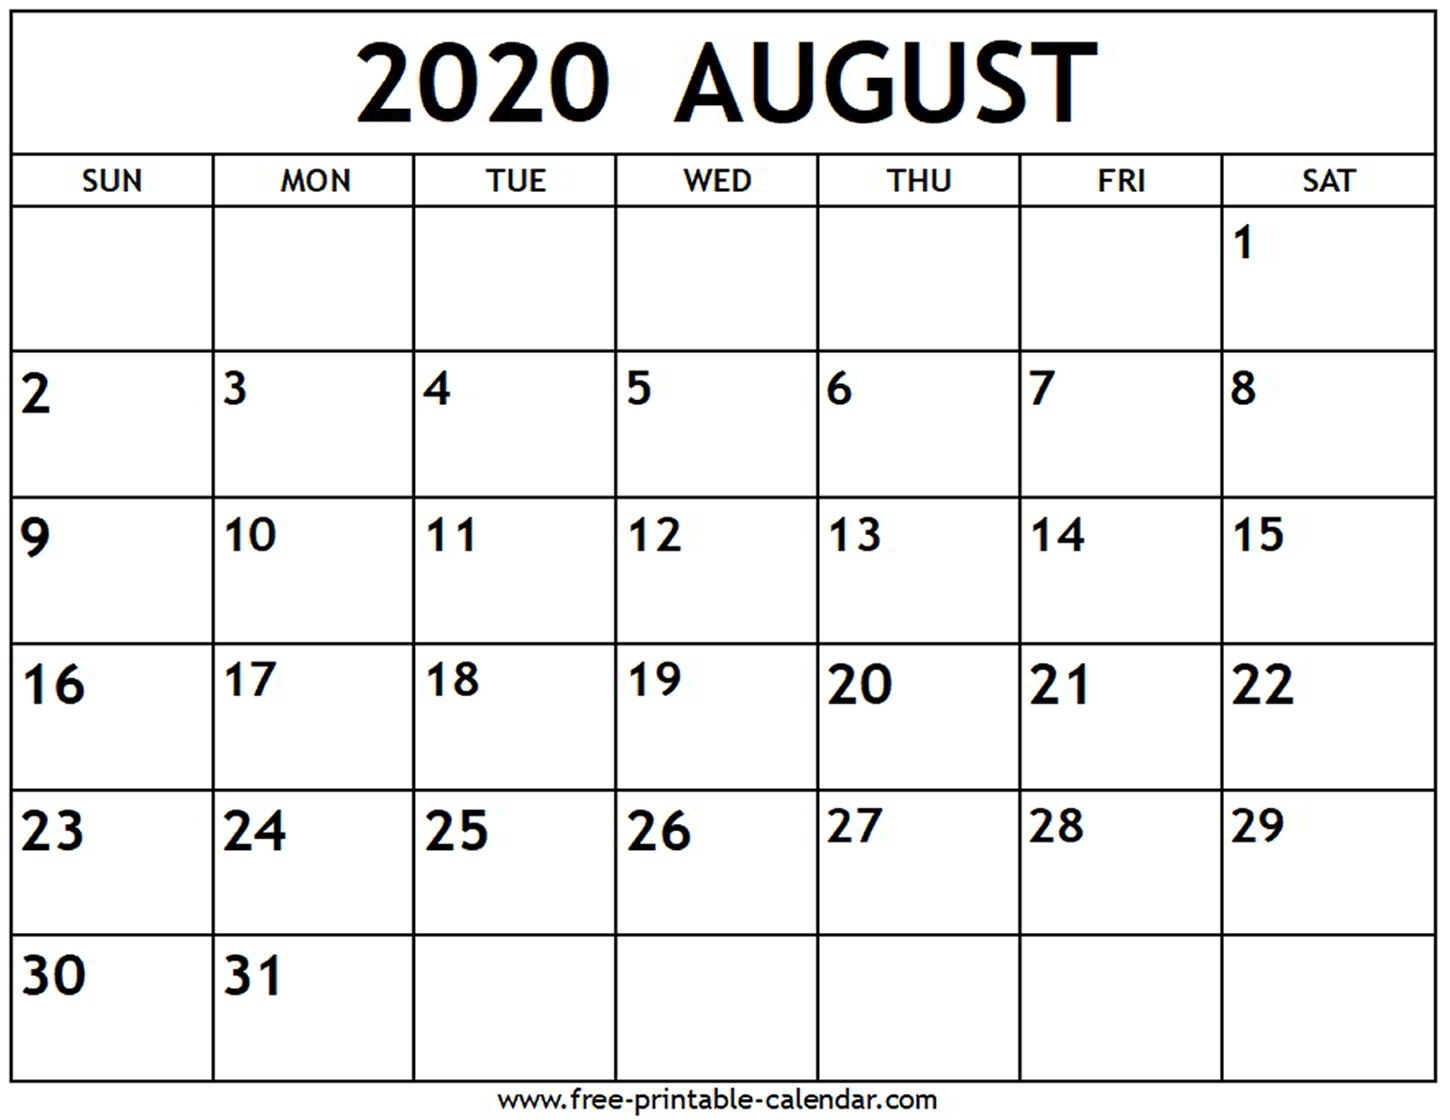 August 2020 Calendar - Free-Printable-Calendar-Monthly Planner June July August2020